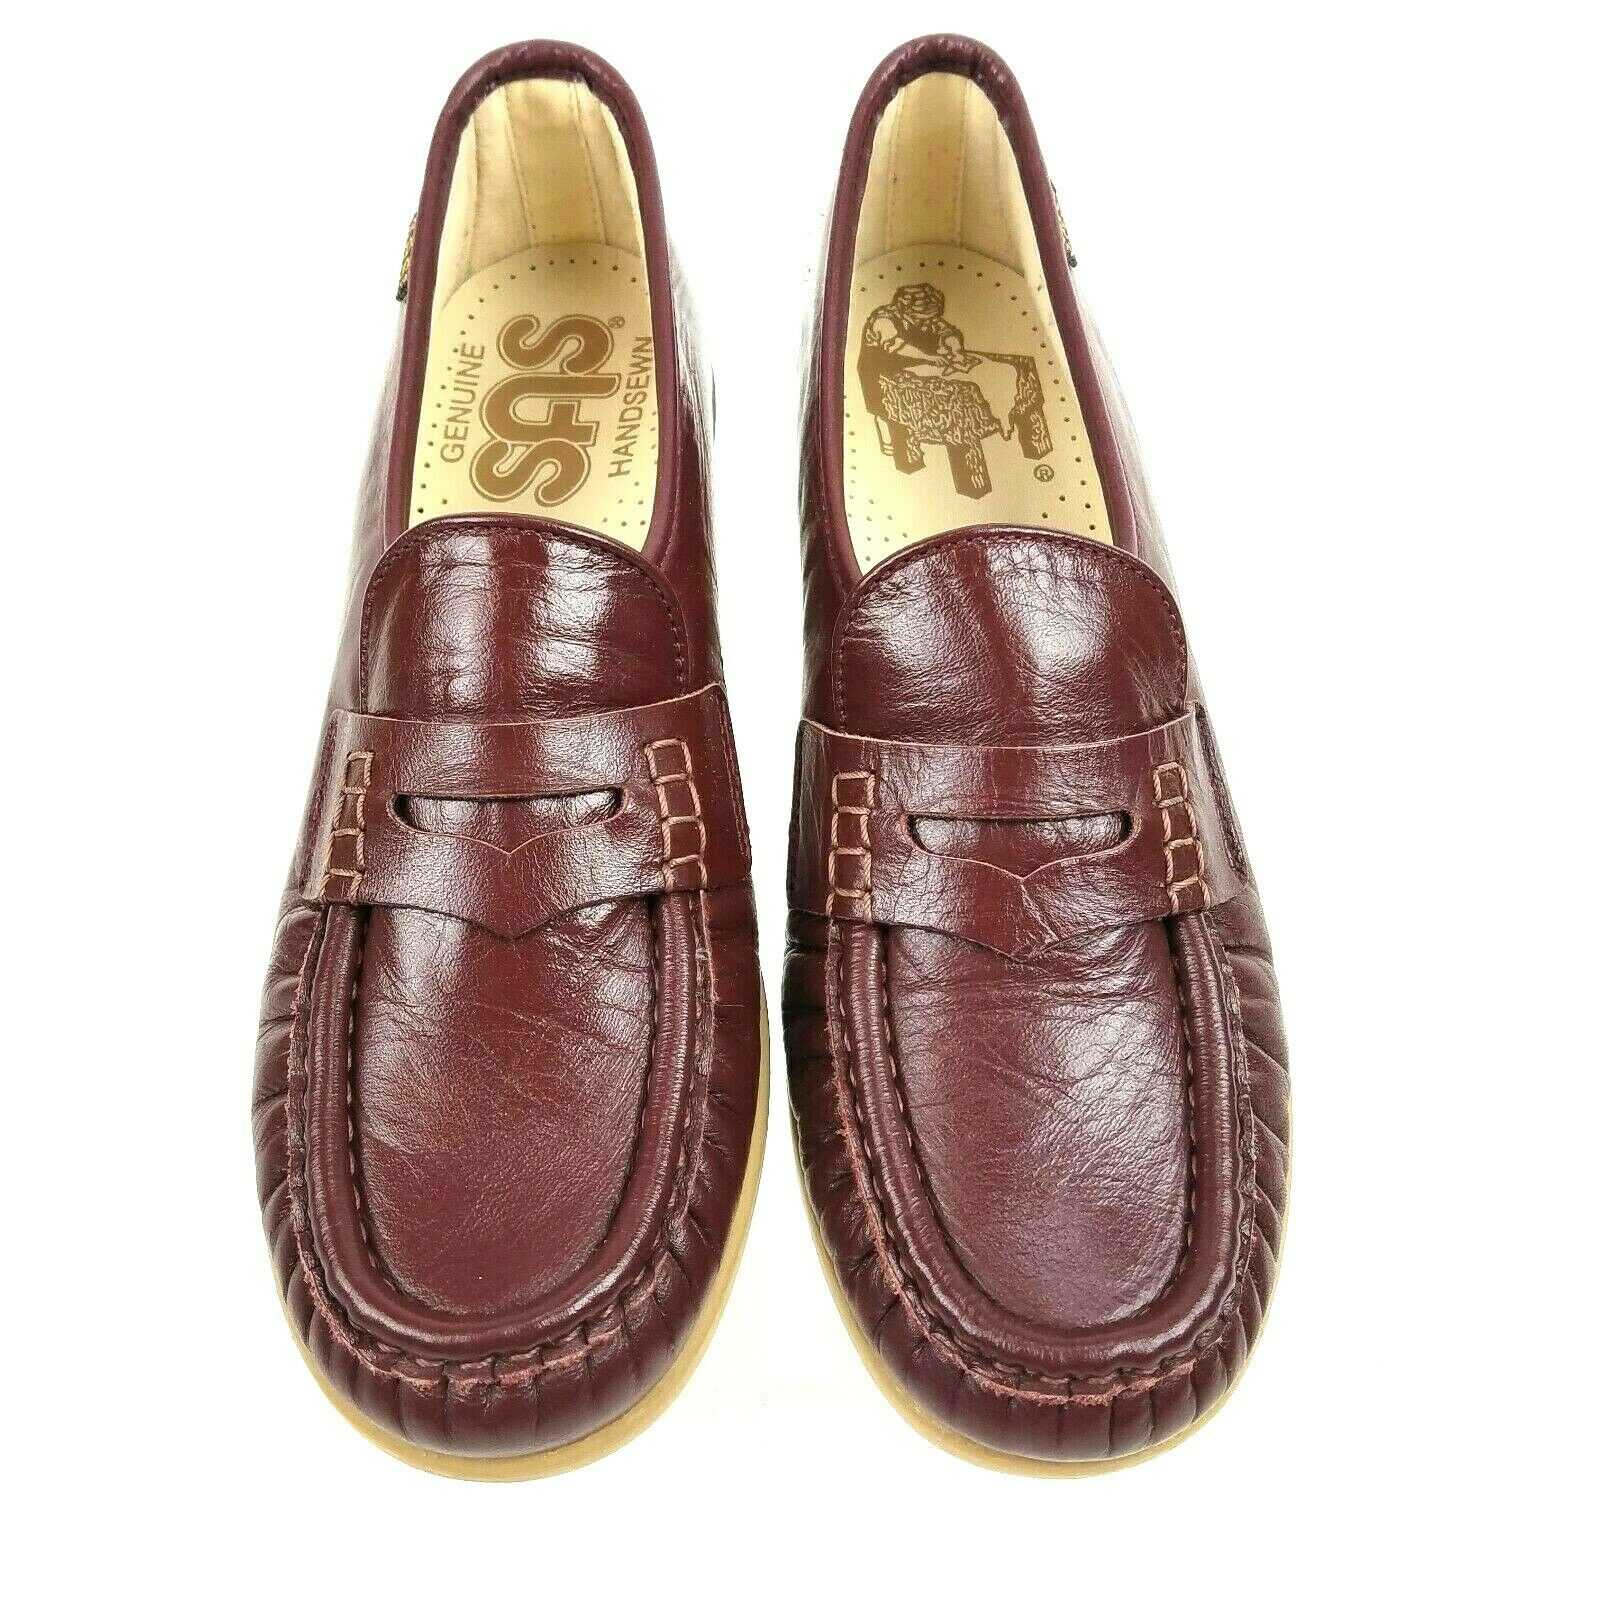 SAS Women's Burgundy Flats Leather Slip On shoes Penny Loafers Size 7N